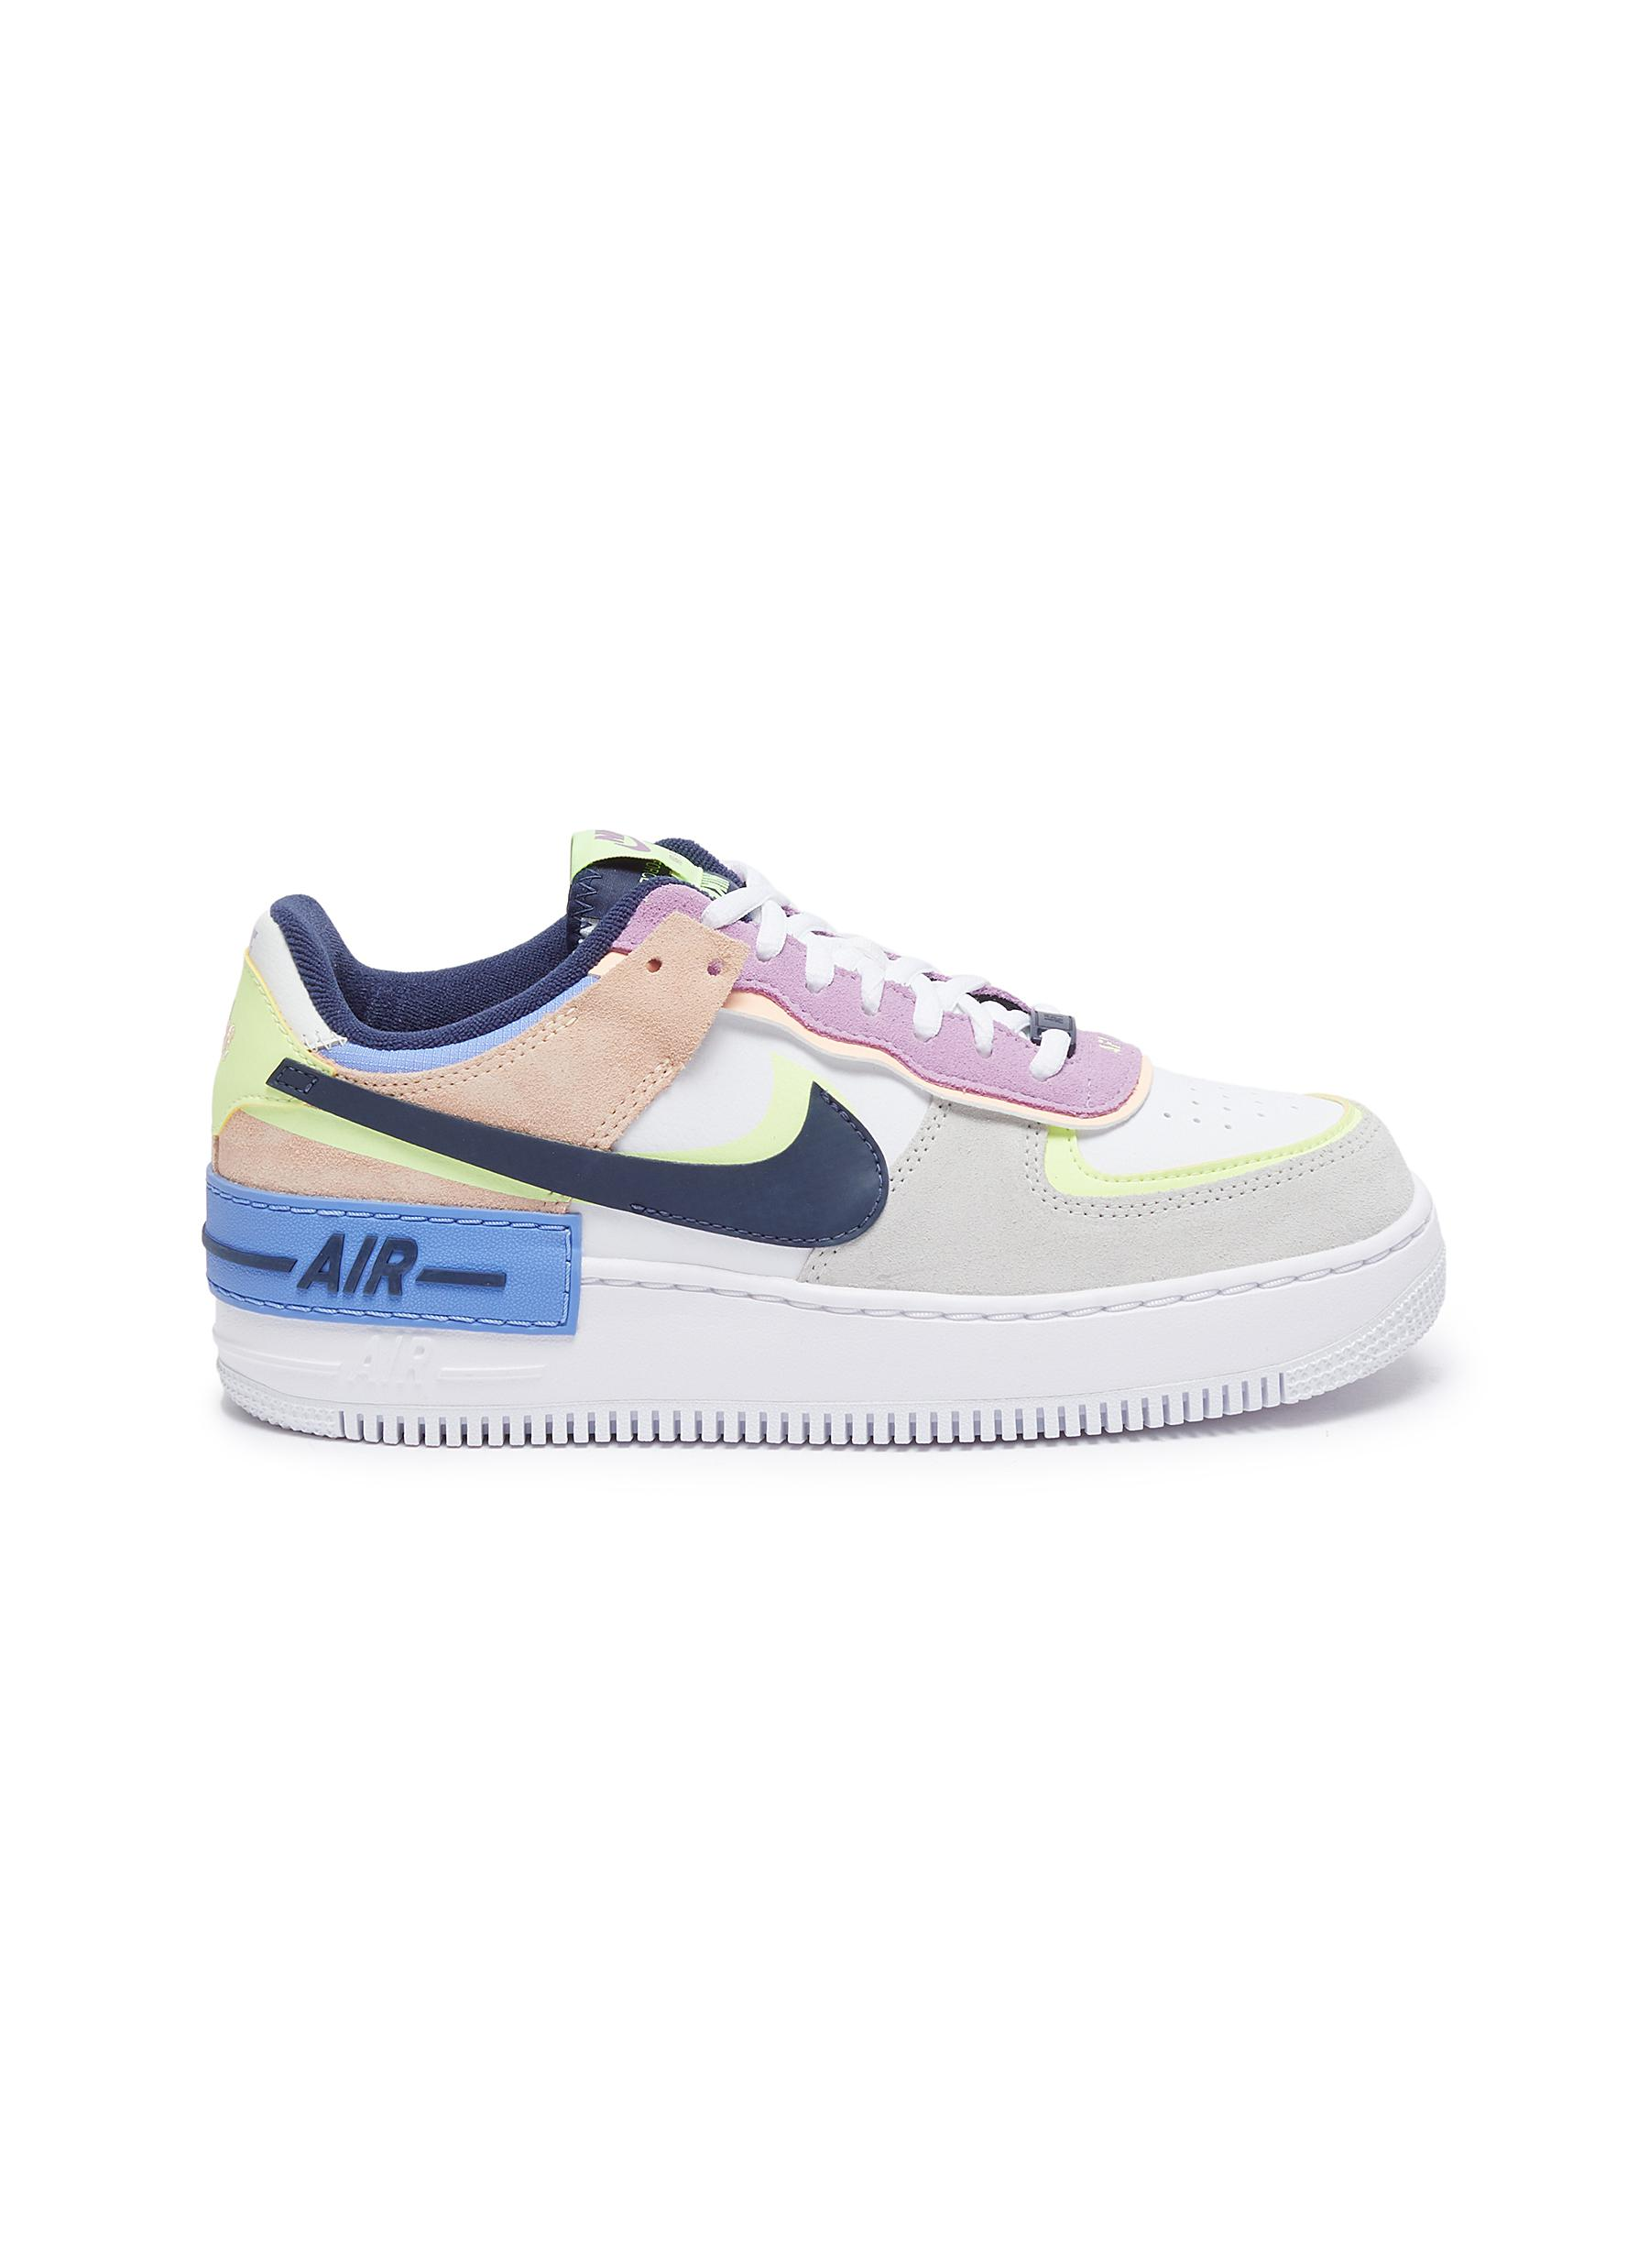 Nike Air Force 1 Shadow Low Top Platform Leather Sneakers Women Lane Crawford Nike air force 1 jester xx black sonic yellow. lane crawford